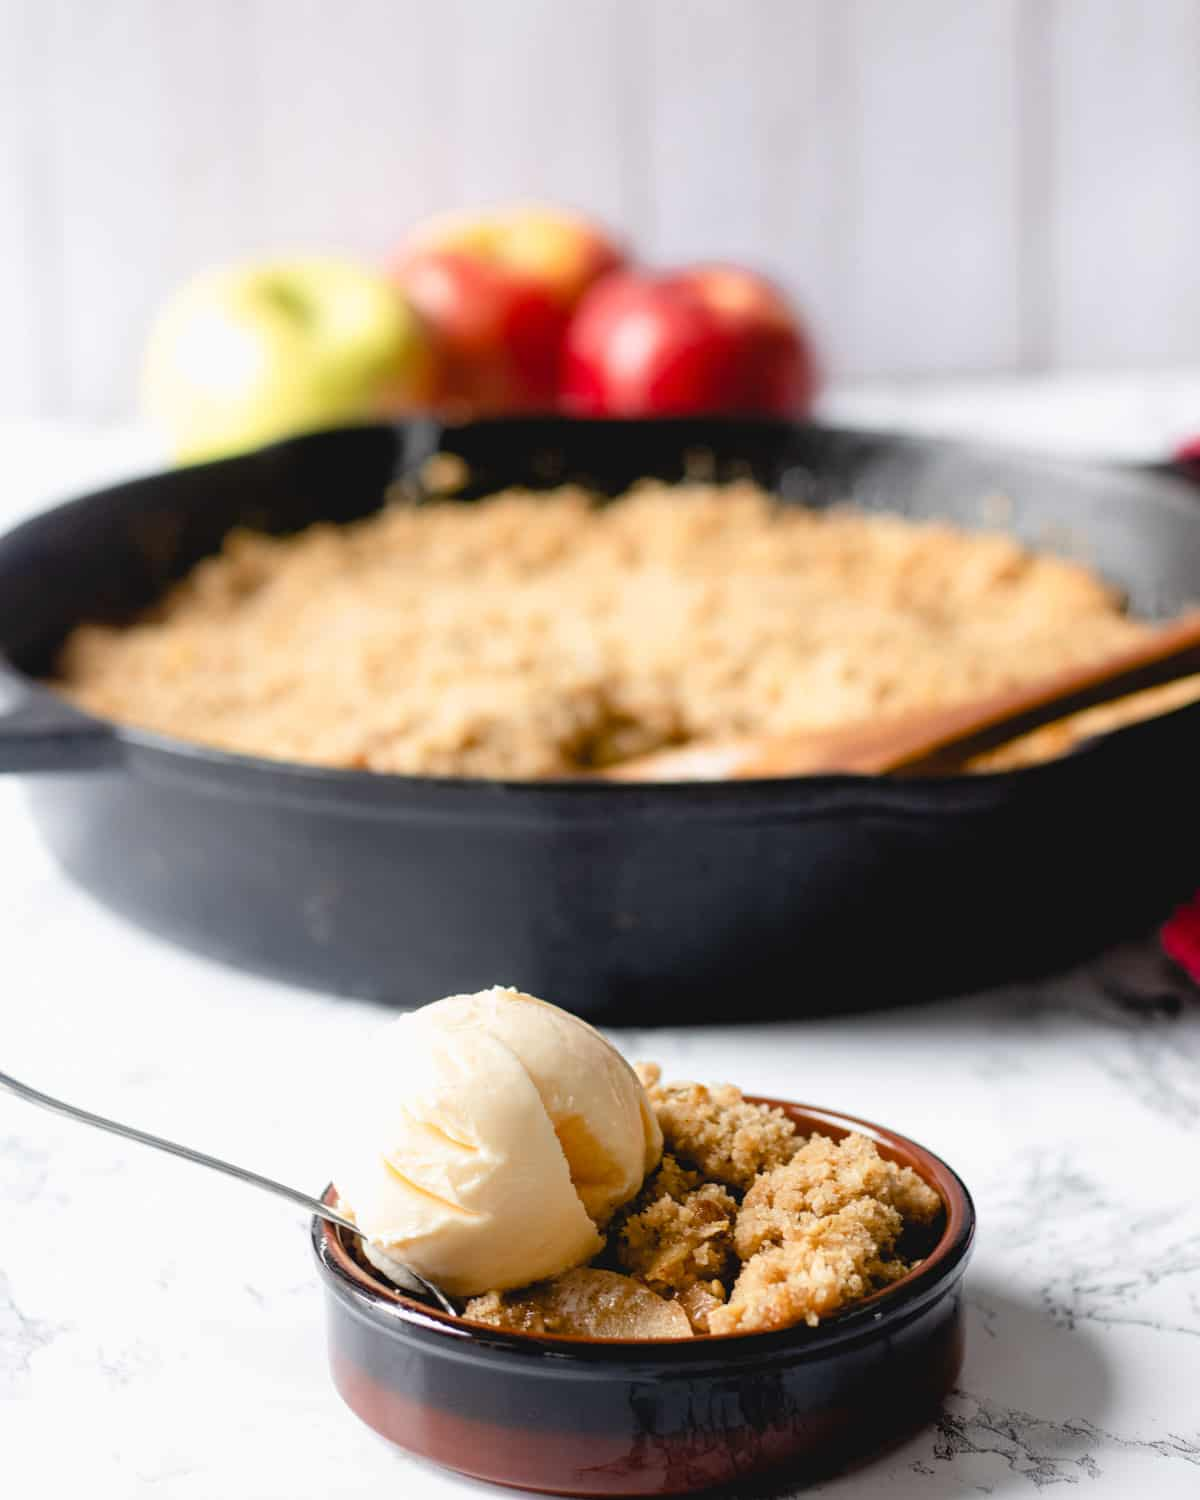 Ramekin of skillet apple crisp with ice cream, skillet of whole crisp in background, with apples behind them.